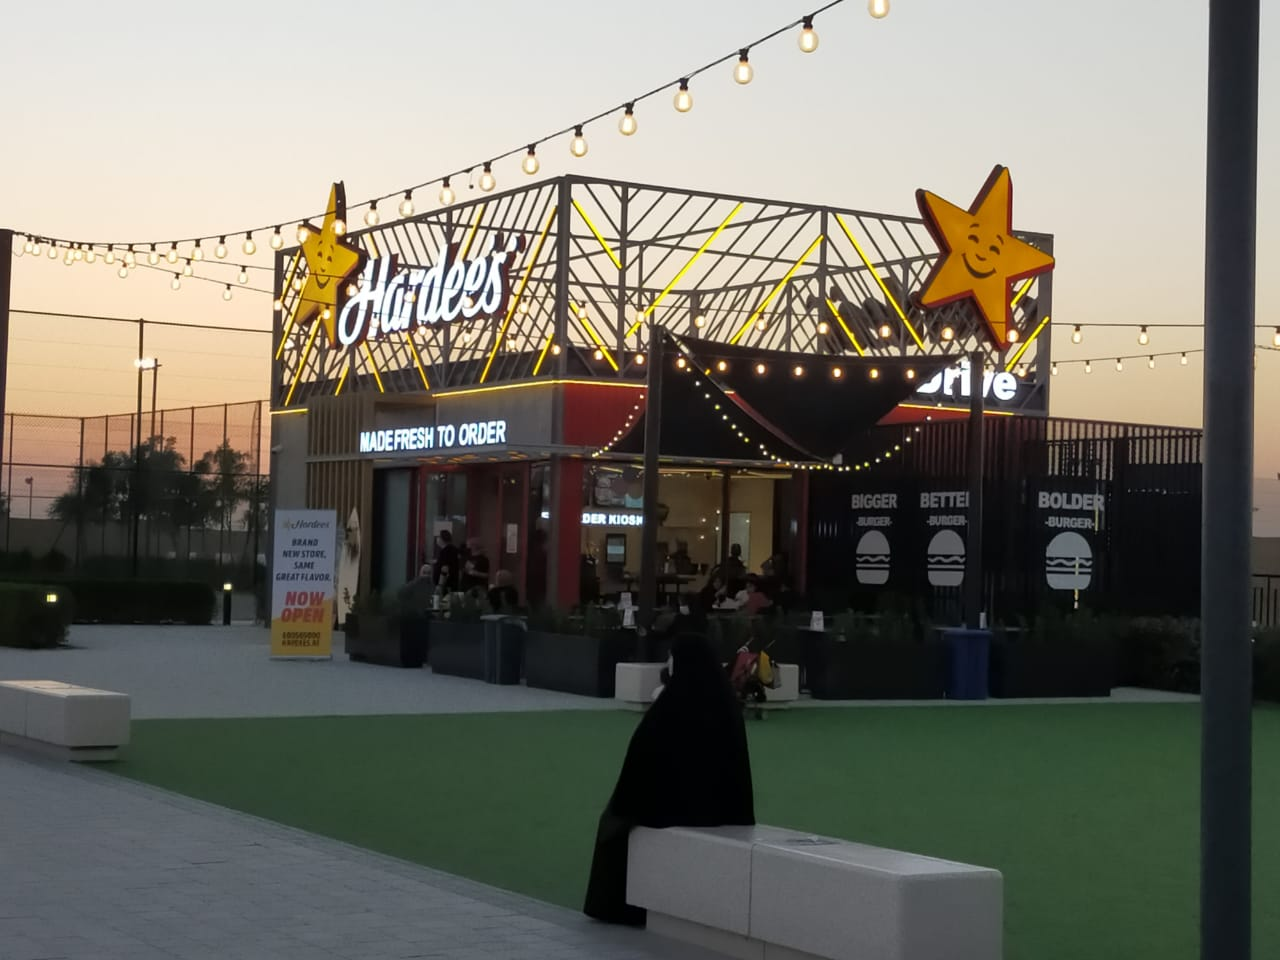 Signage work for Hardee's